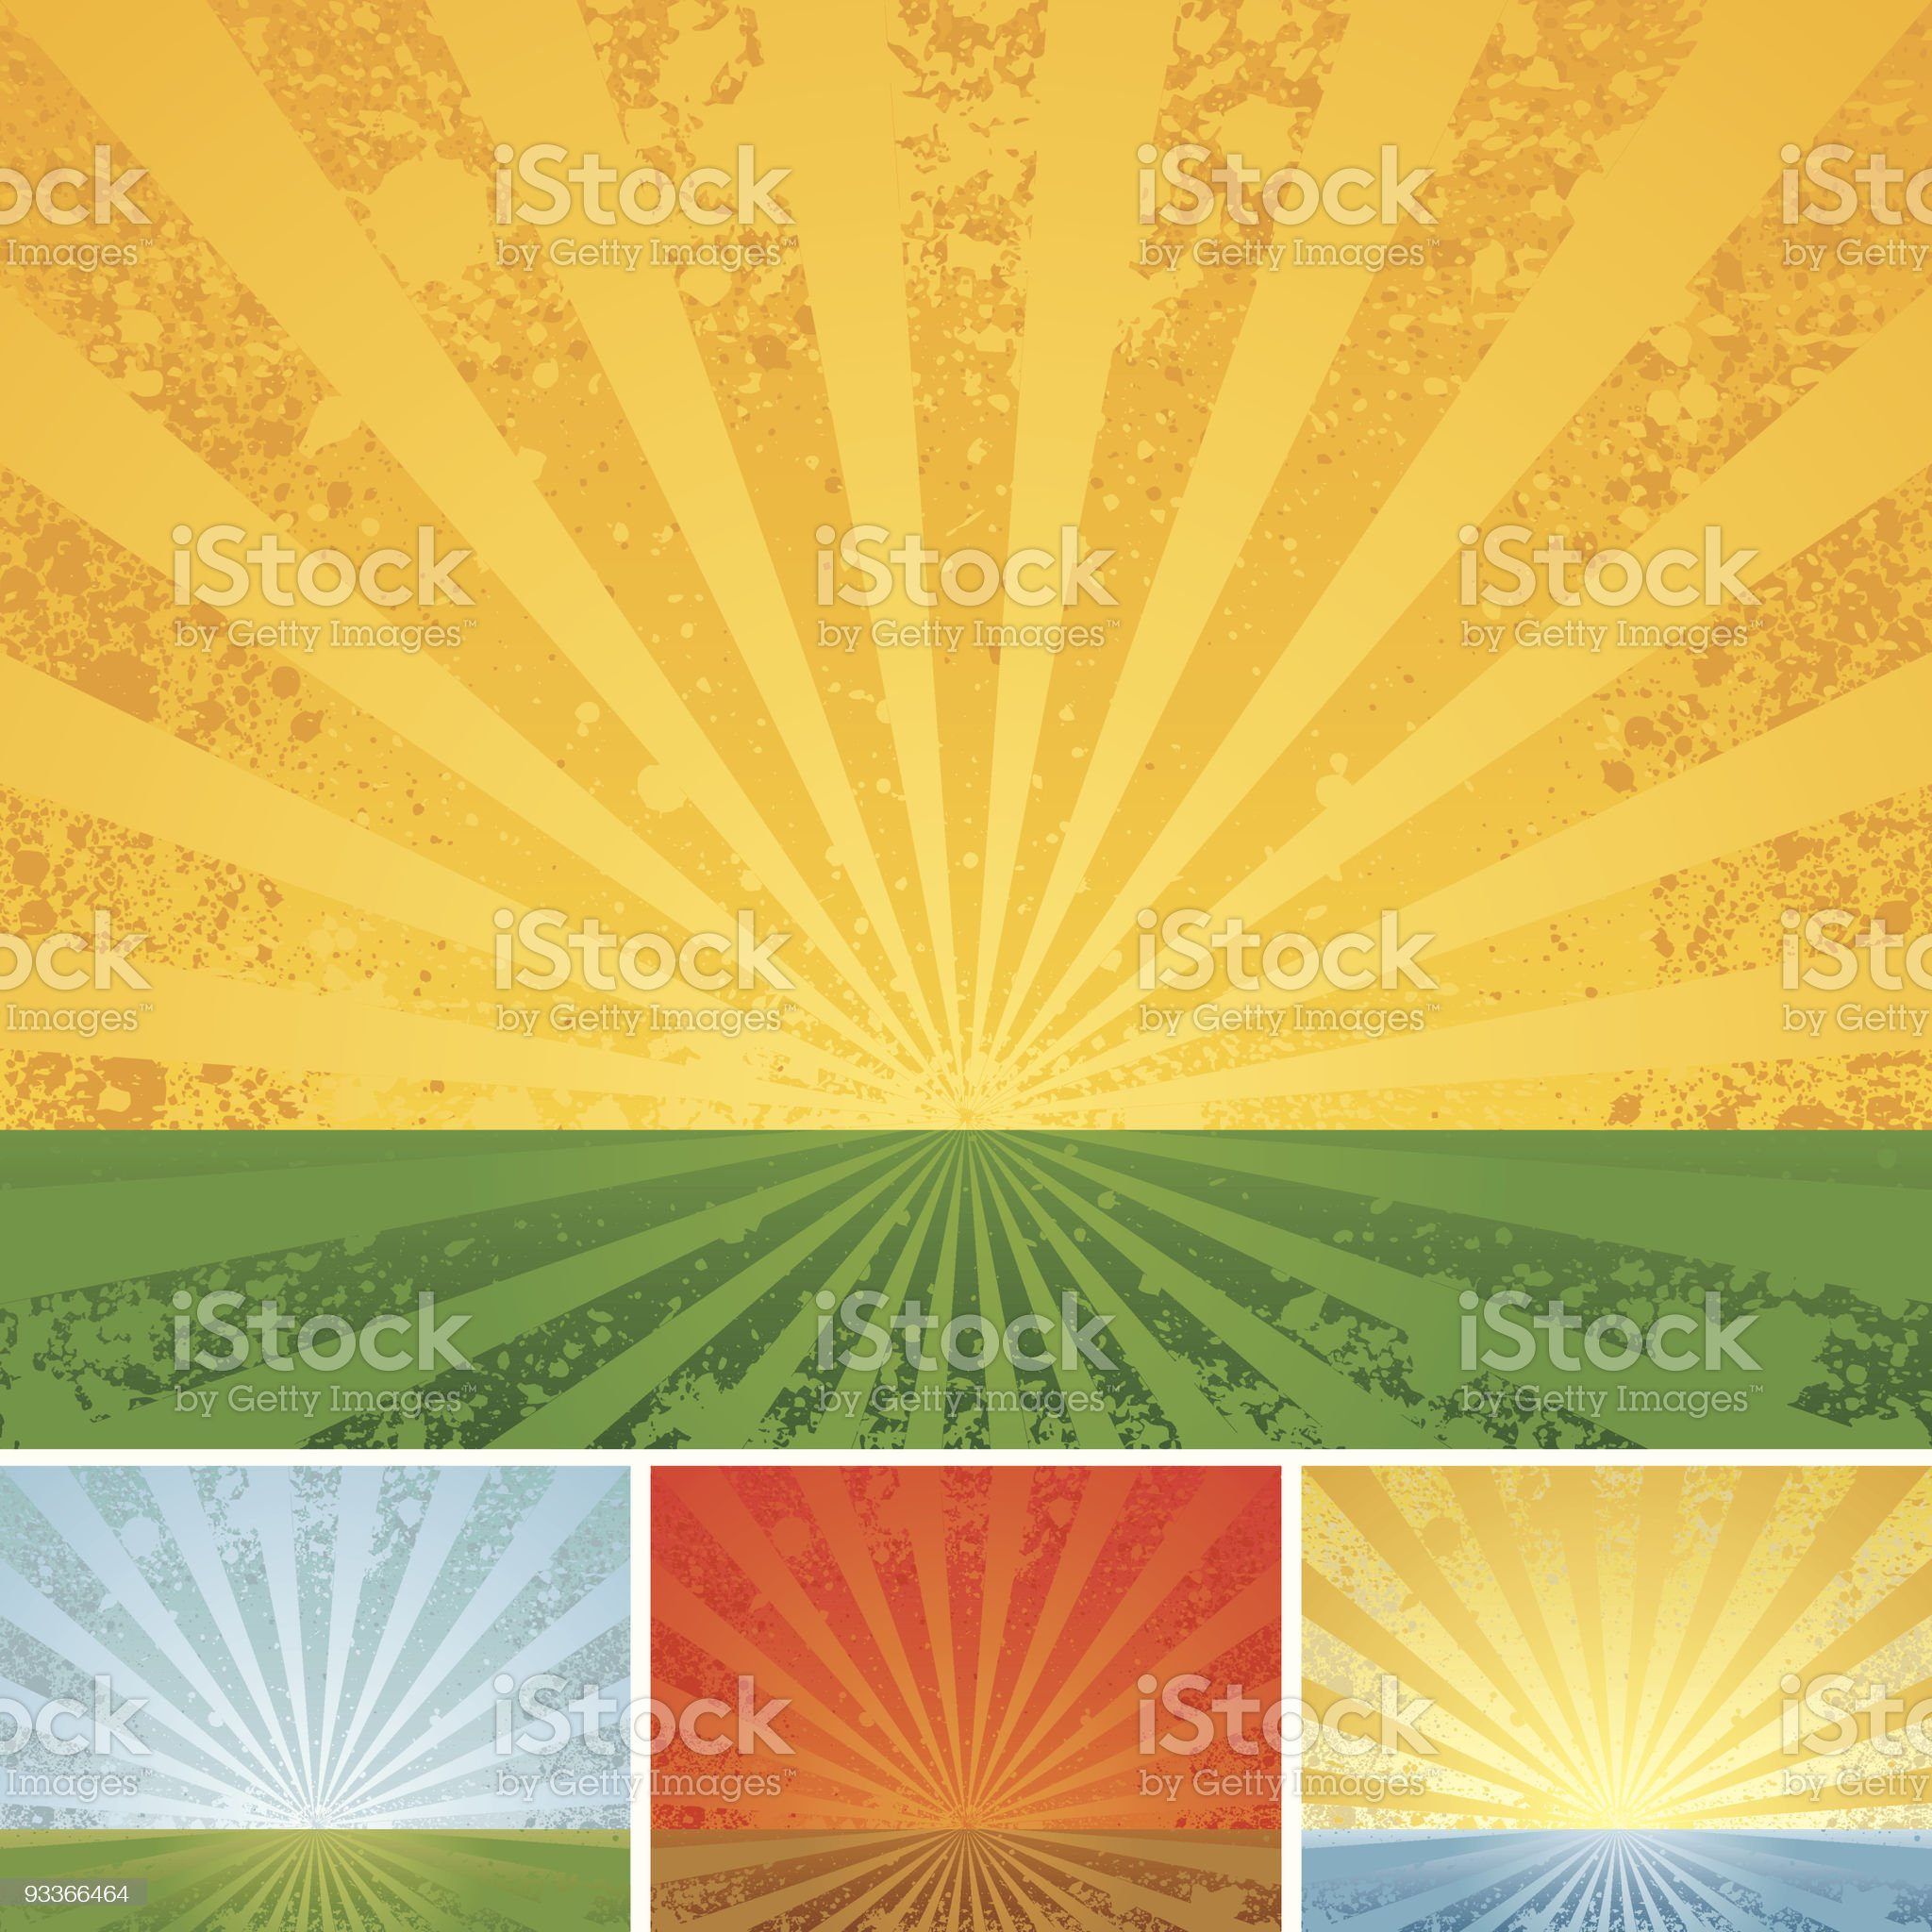 Vintage shining royalty-free stock vector art